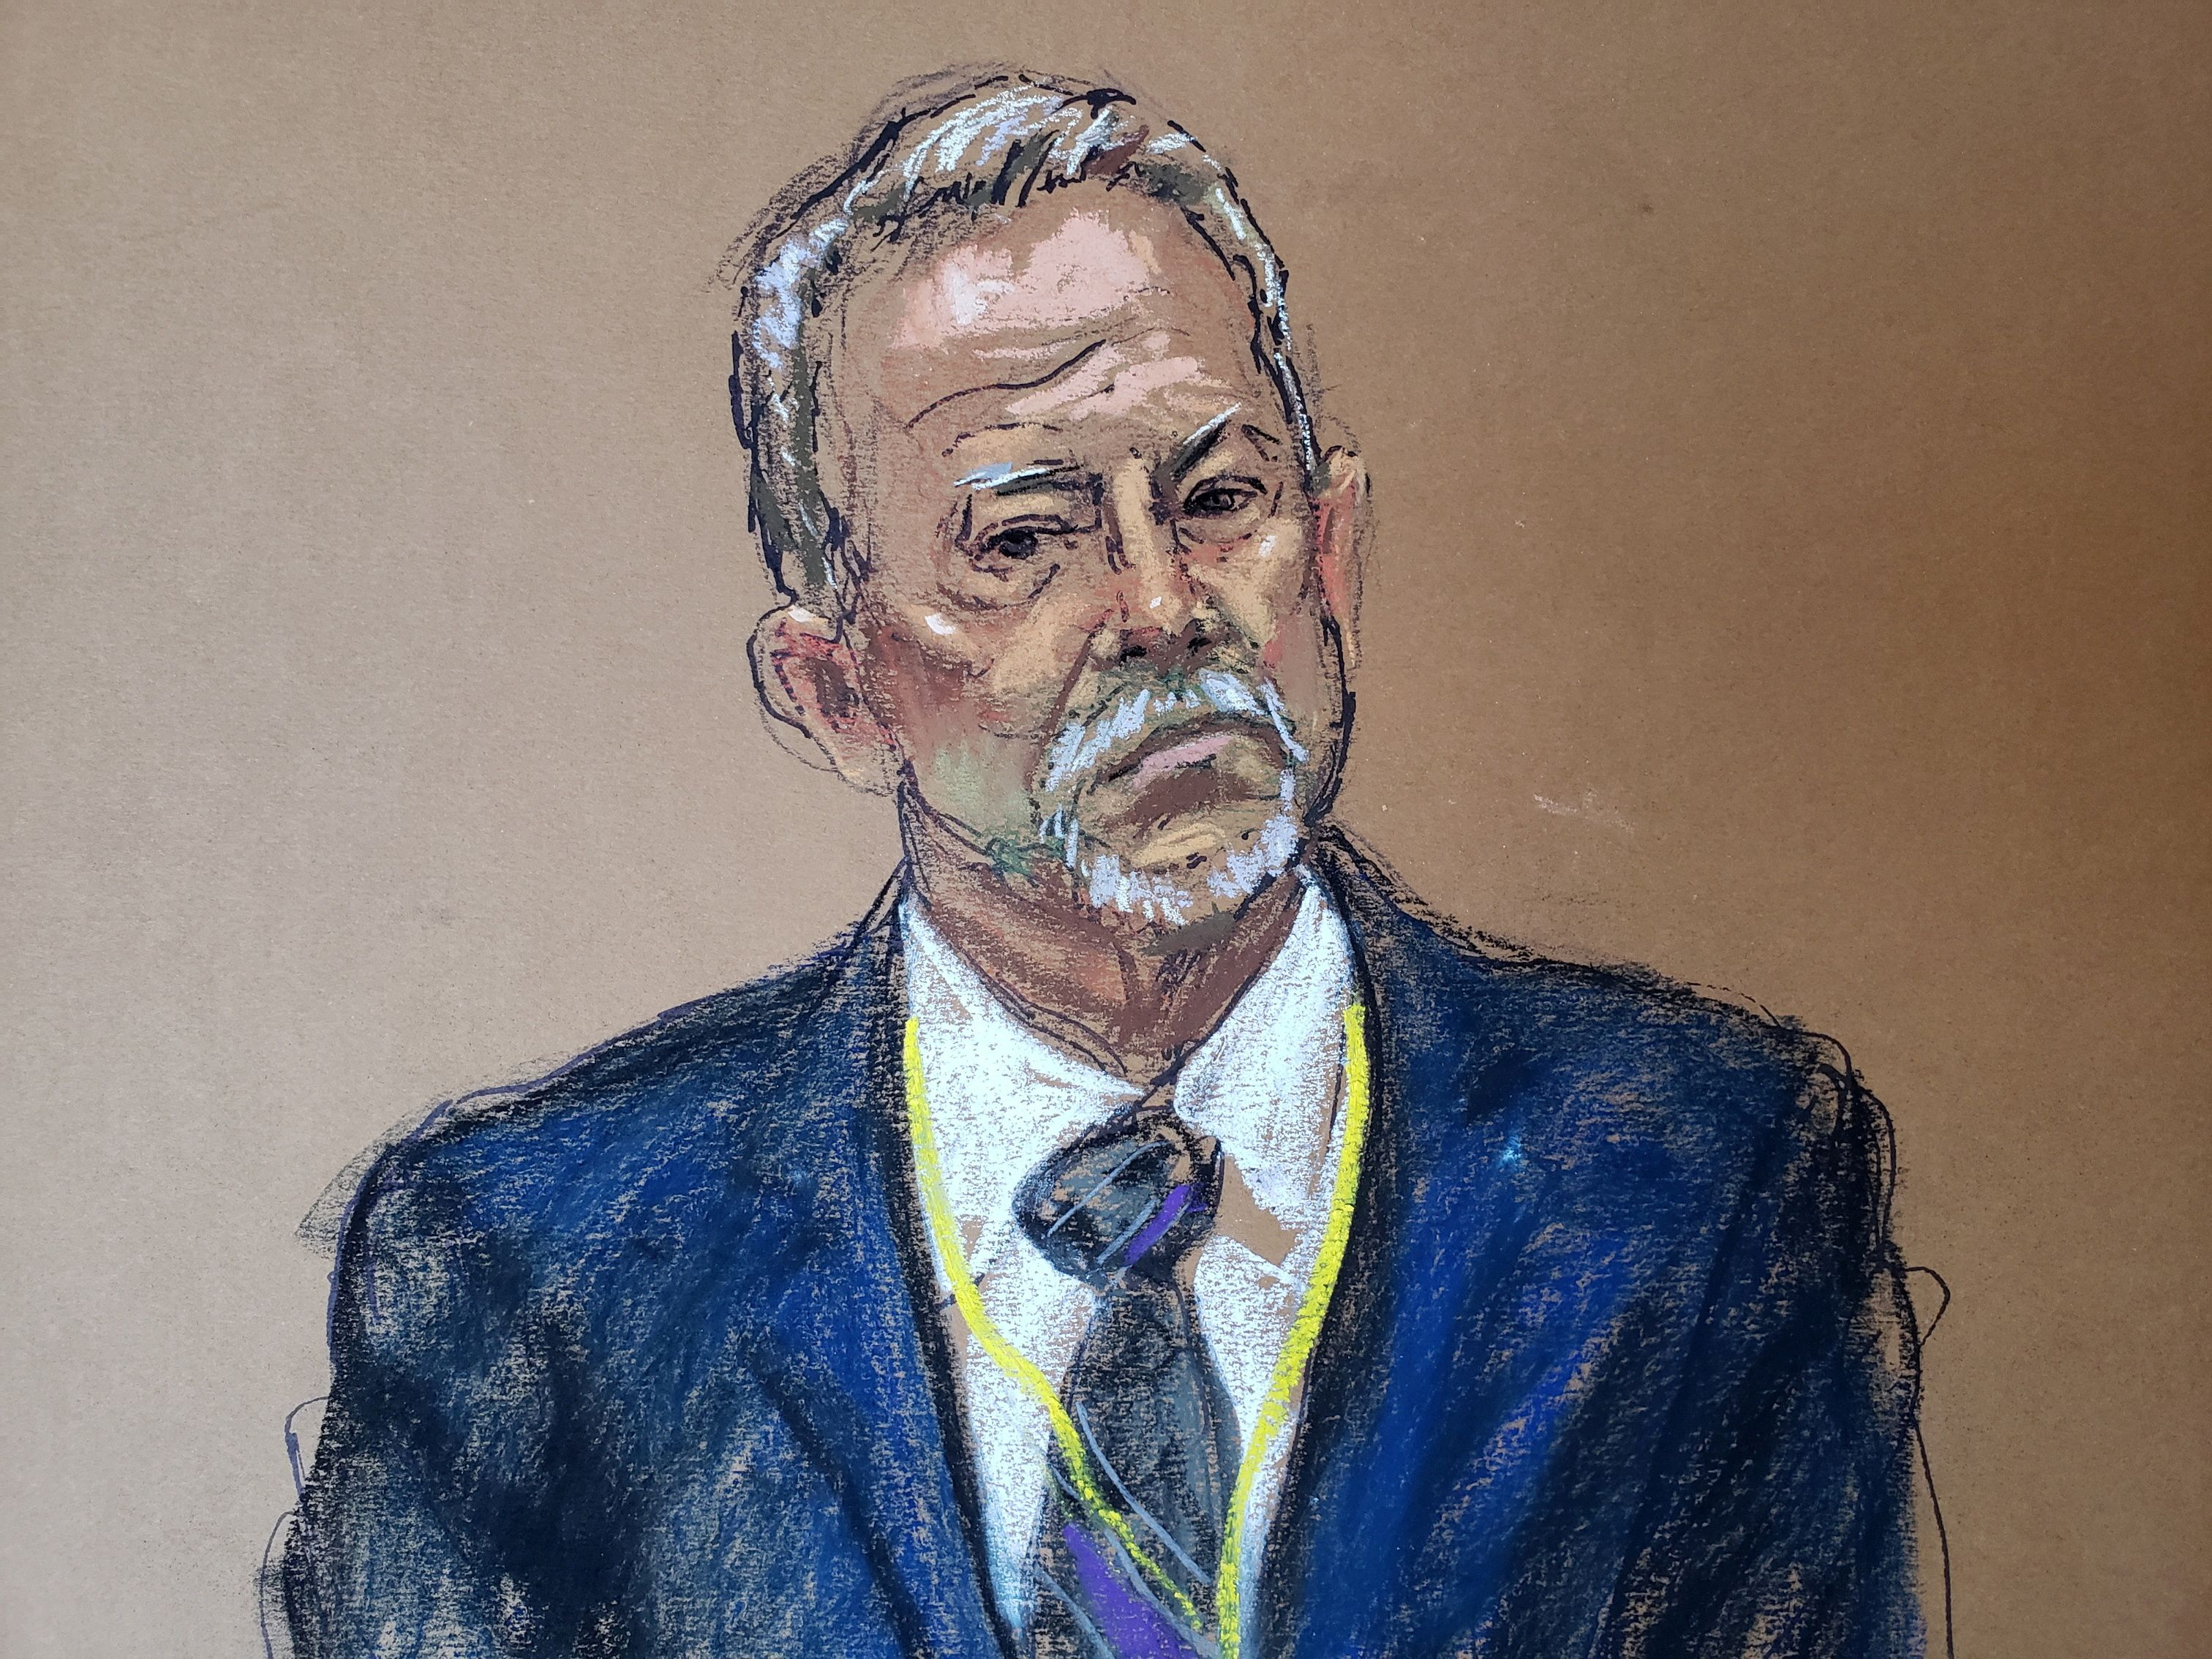 Use-of-force expert Barry Brodd is questioned on the twelfth day of the trial of former Minneapolis police officer Derek Chauvin for second-degree murder, third-degree murder and second-degree manslaughter in the death of George Floyd in Minneapolis, Minnesota, U.S. April 13, 2021 in this courtroom sketch. REUTERS/Jane Rosenberg